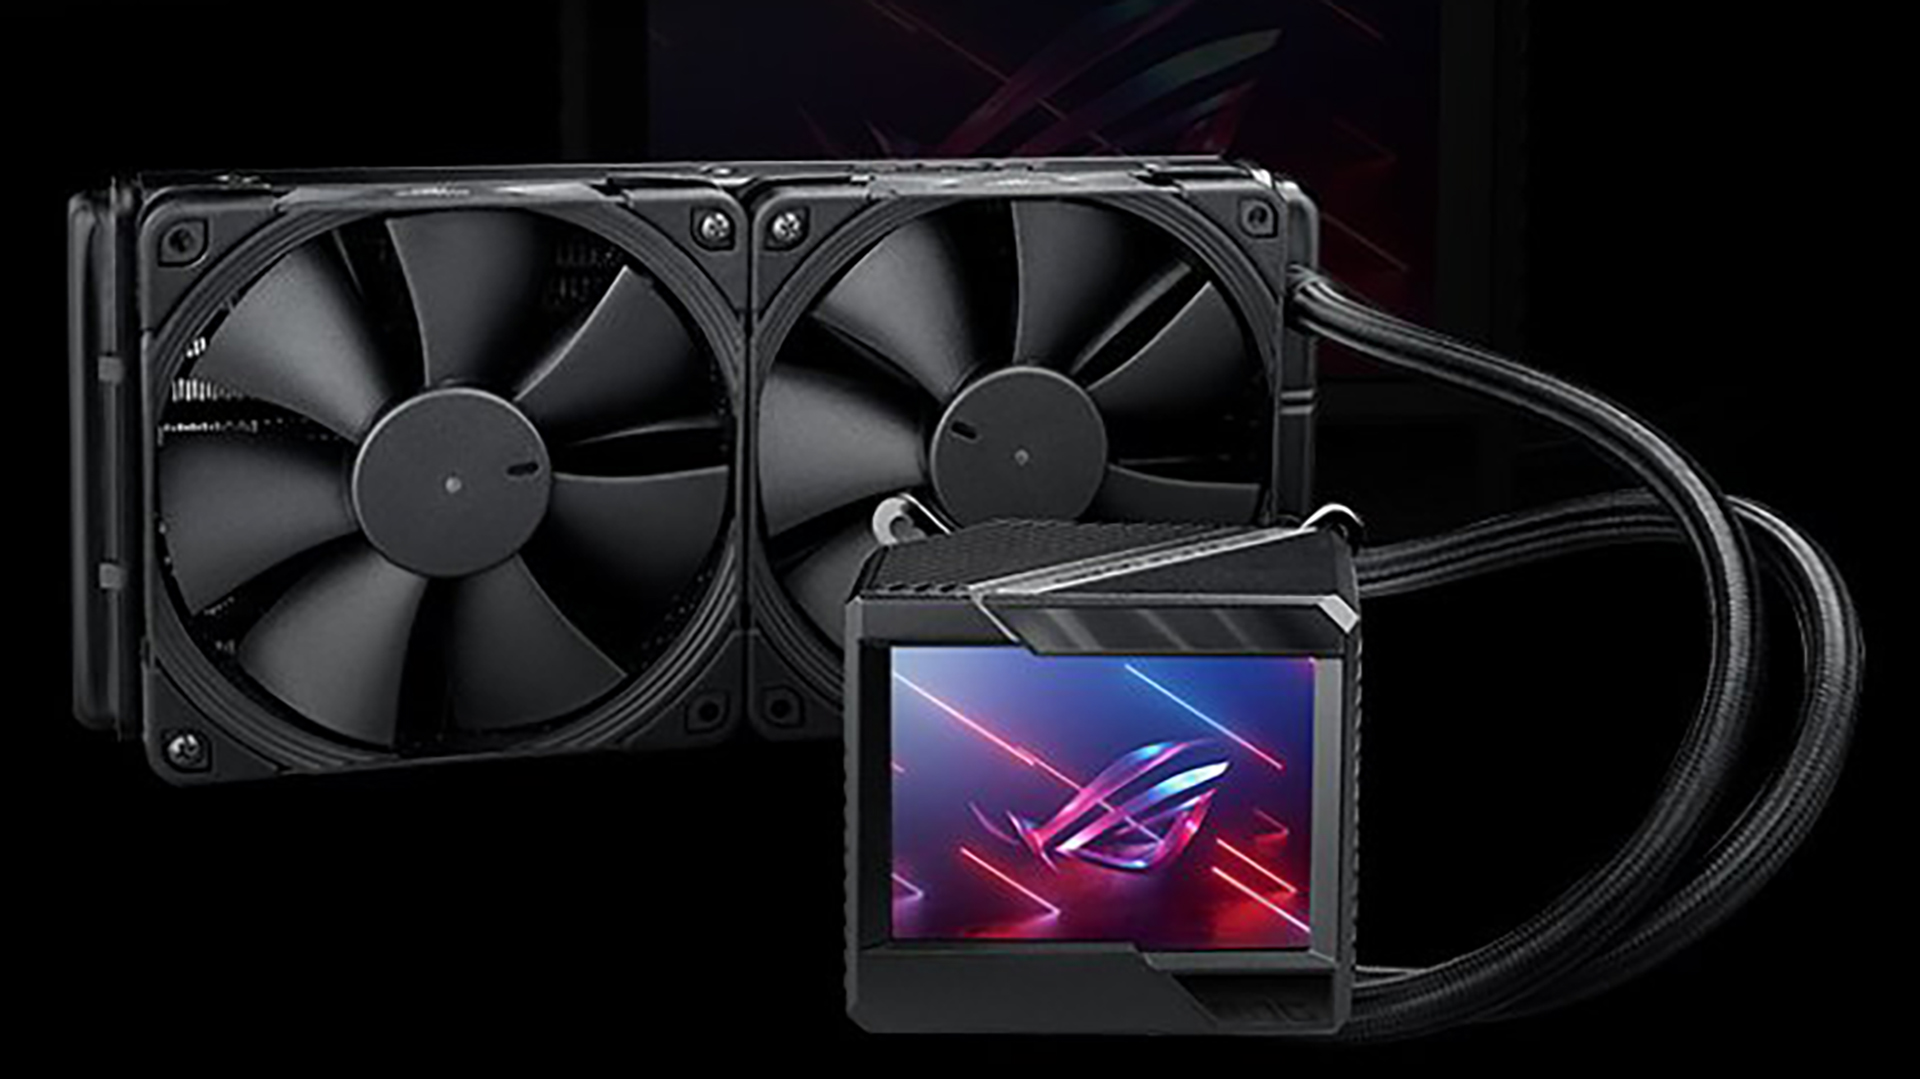 Asus appears to have strapped a tiny TV to an ROG liquid cooler